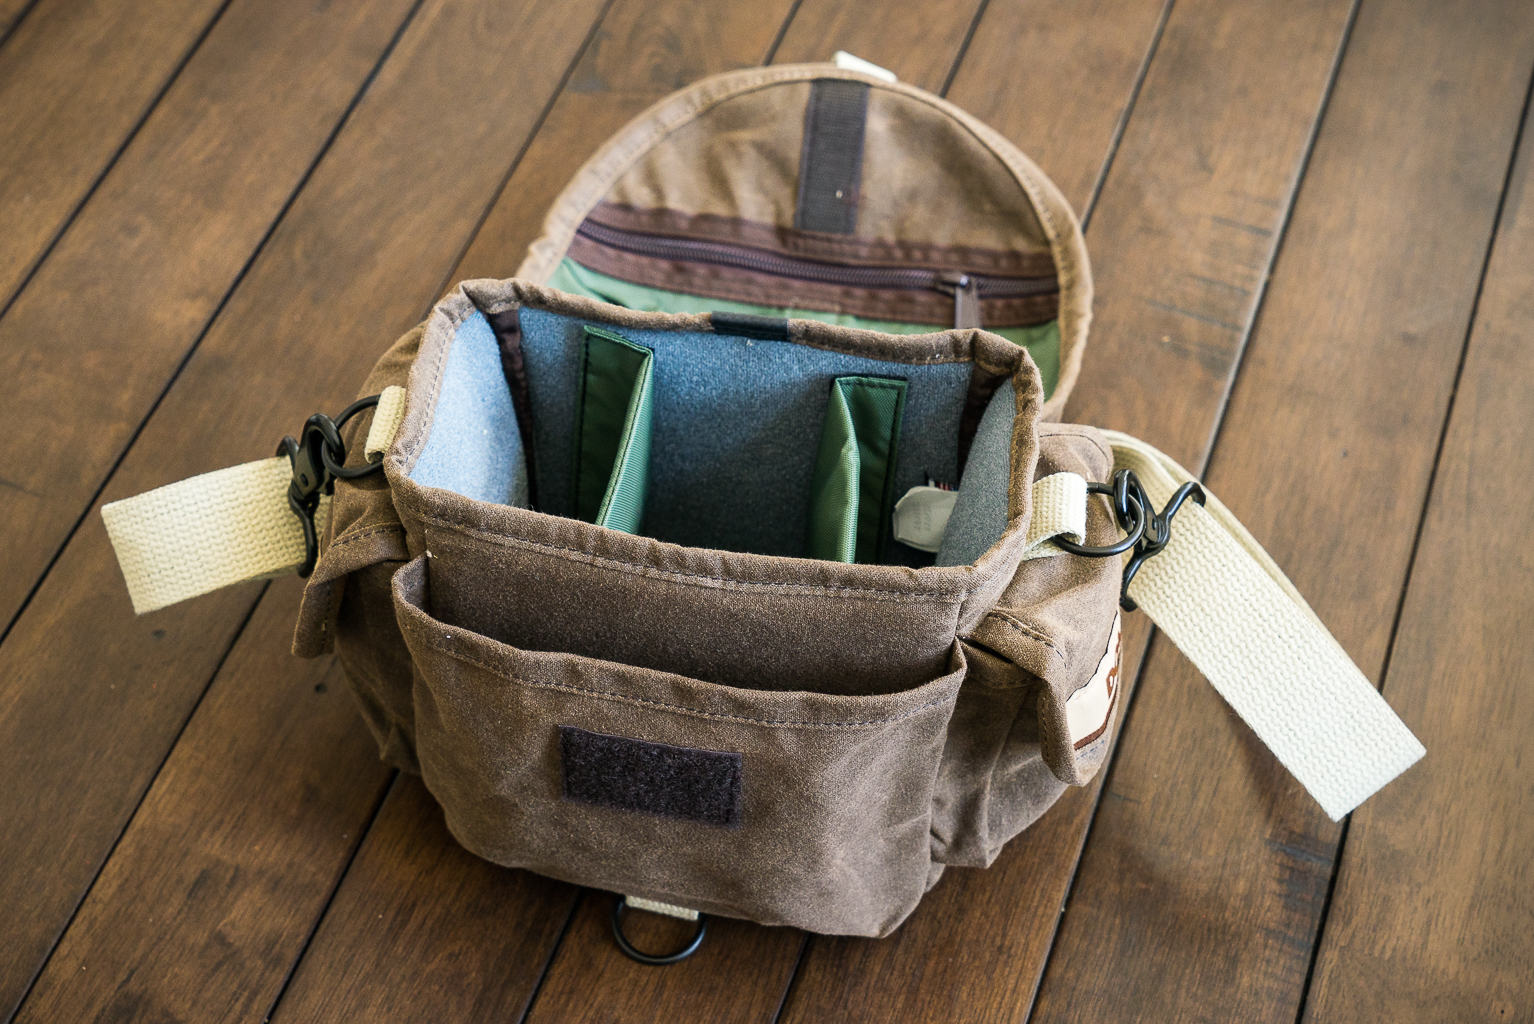 Domke F-8 compartments and pockets